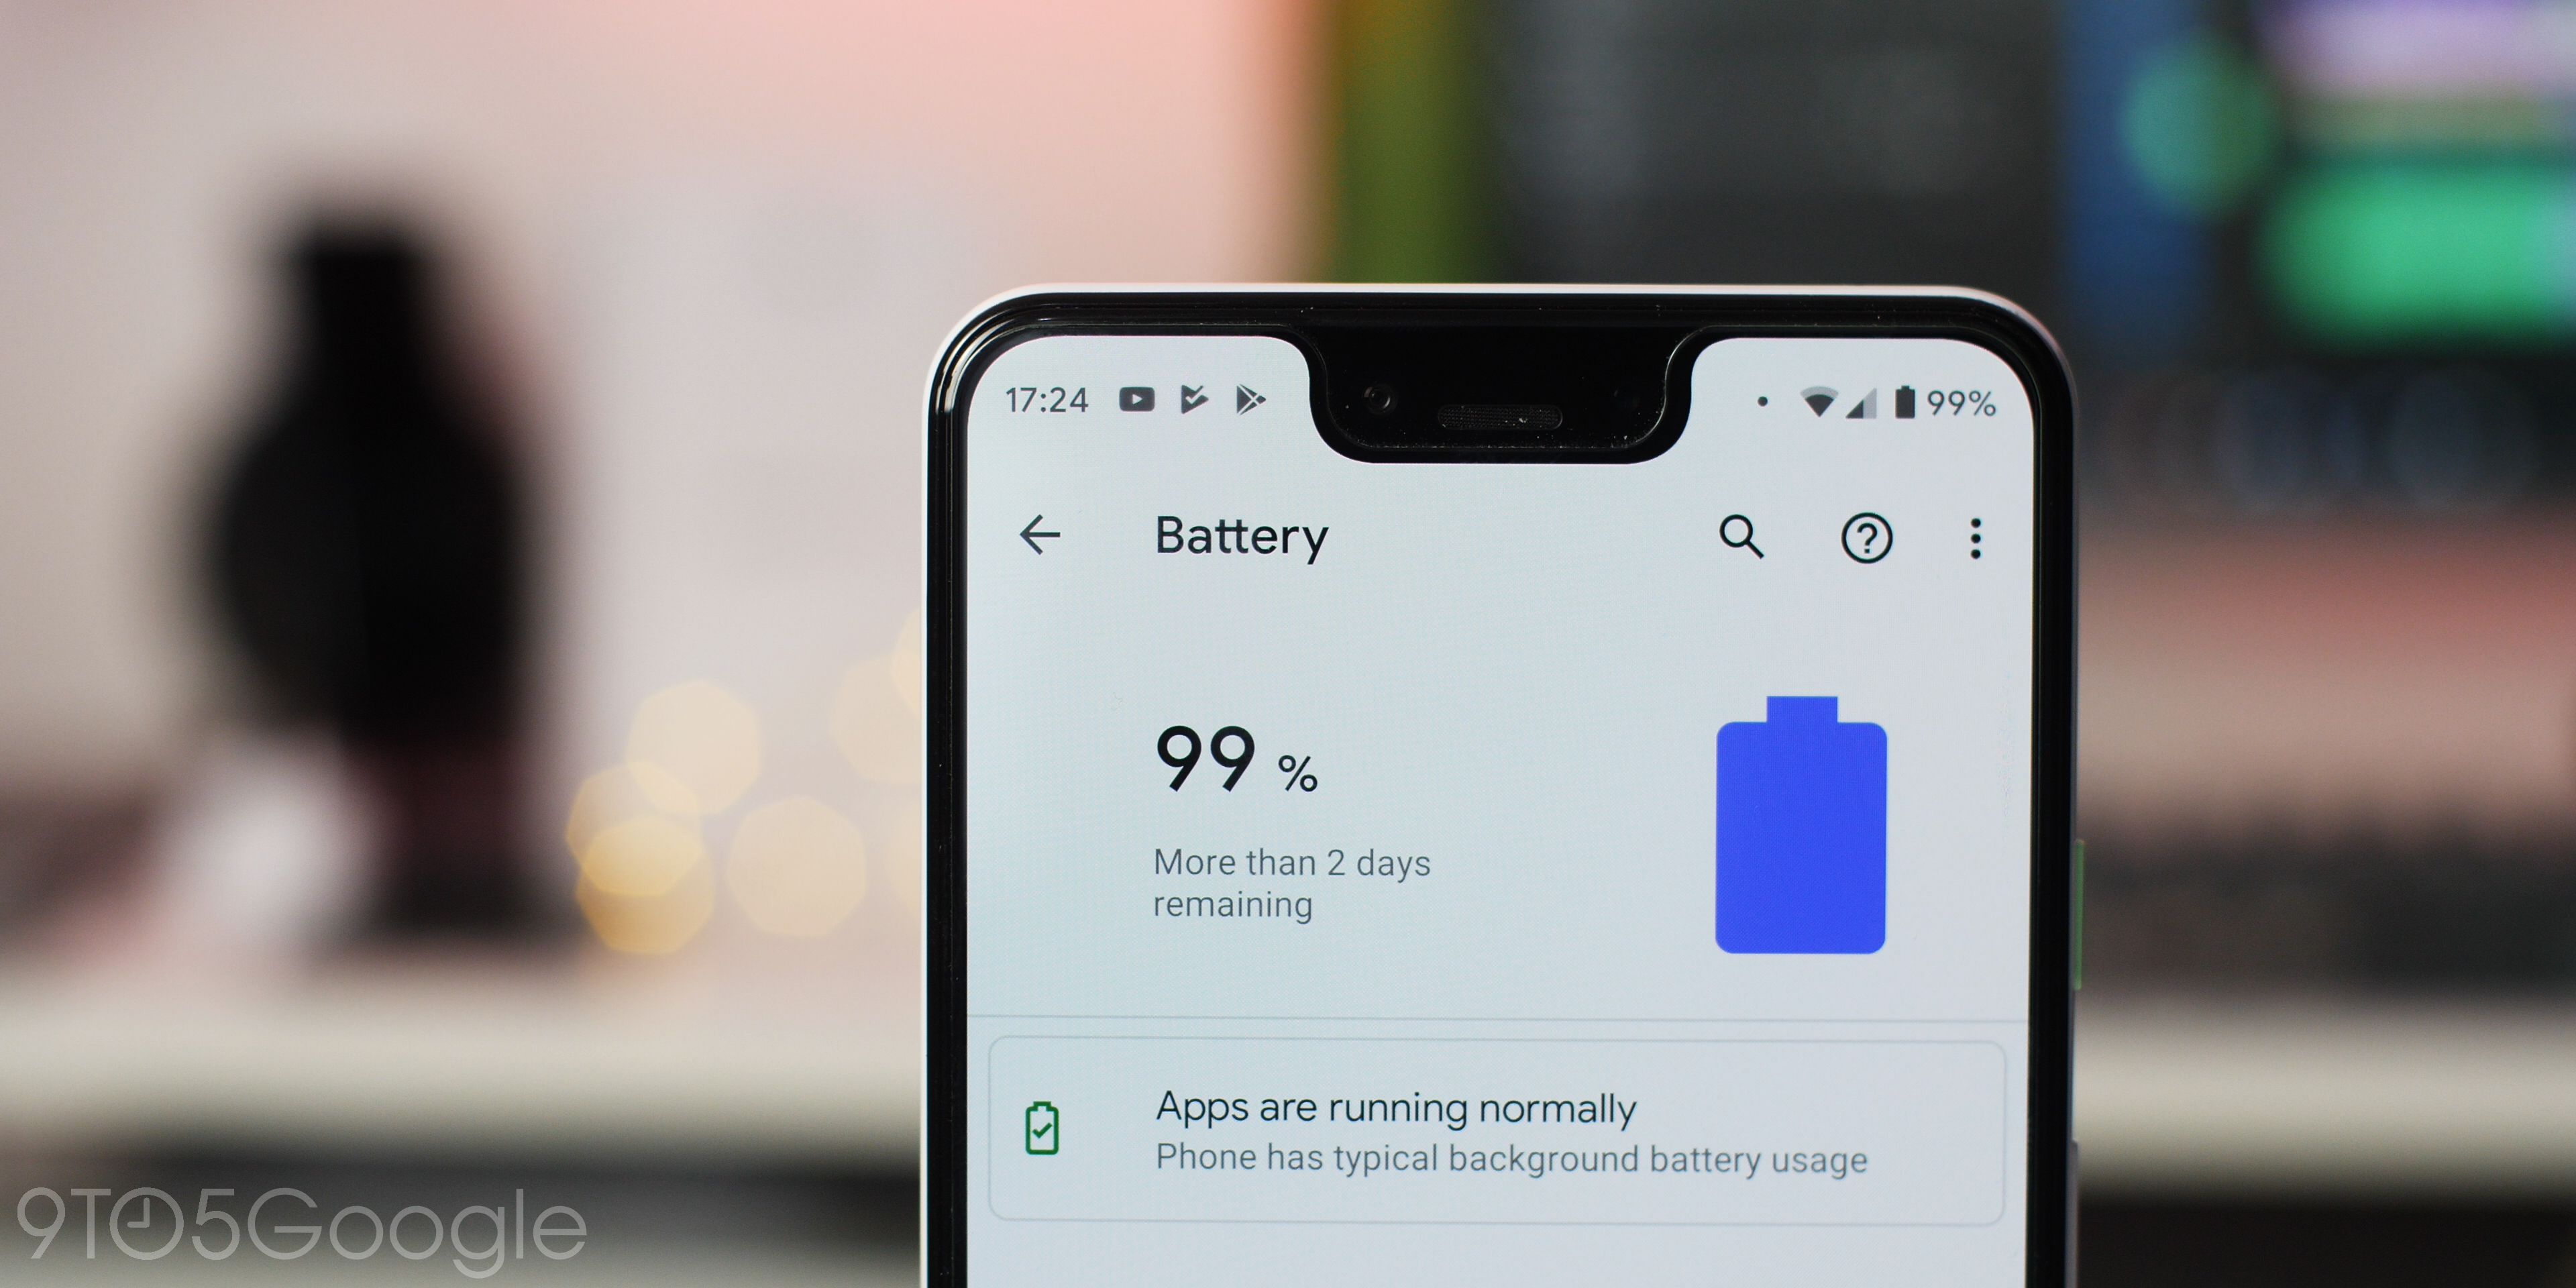 Pixel 3 Xl Battery life